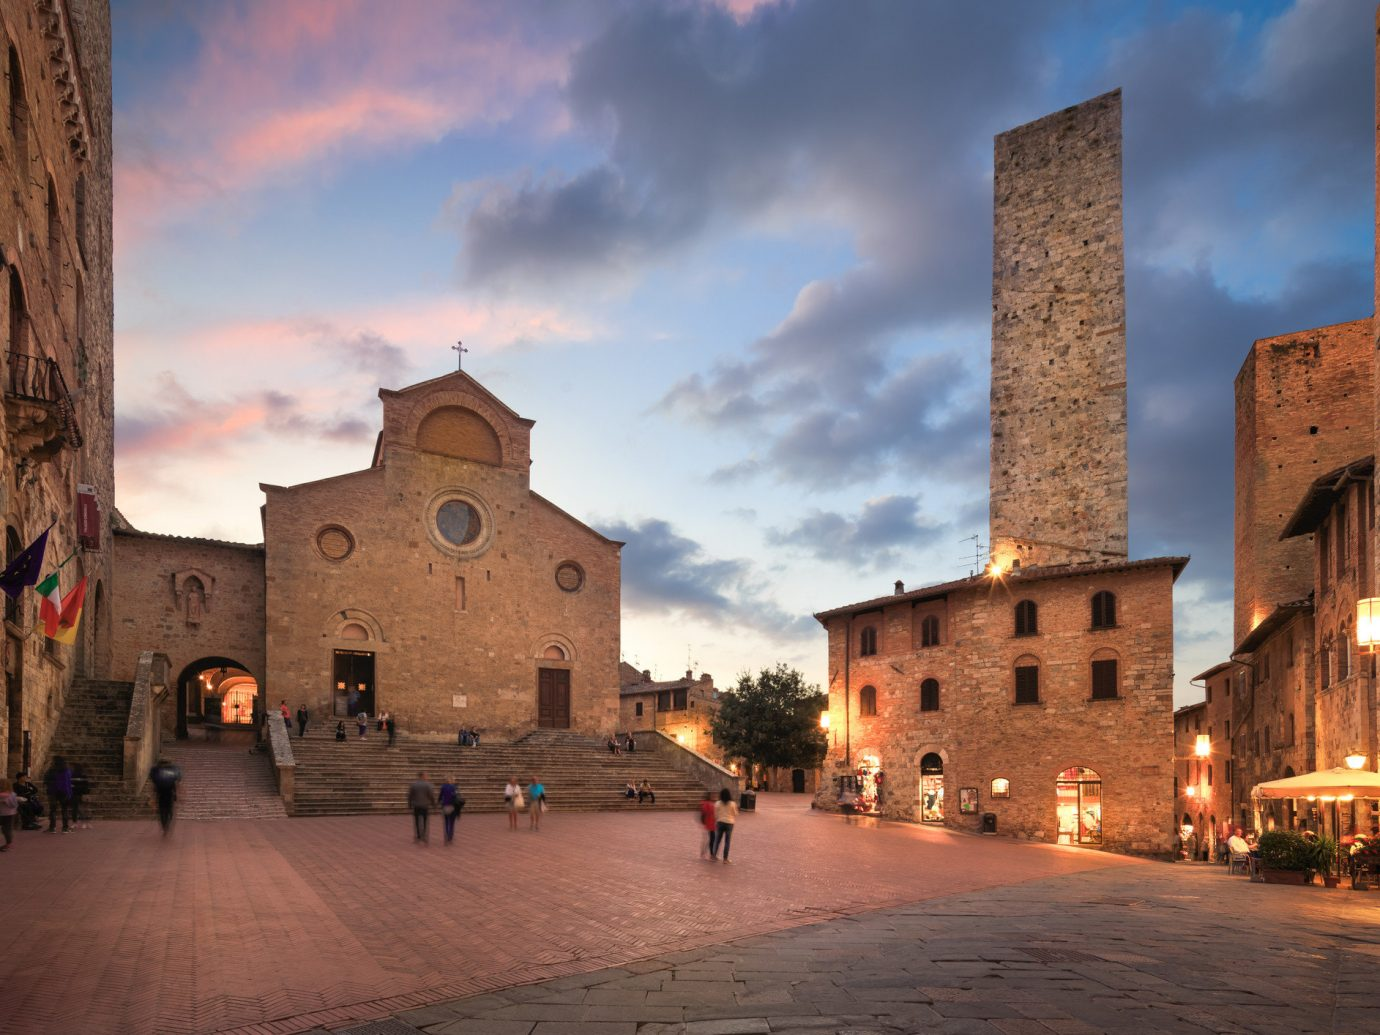 Scenes of San Gimignano, Italy at night